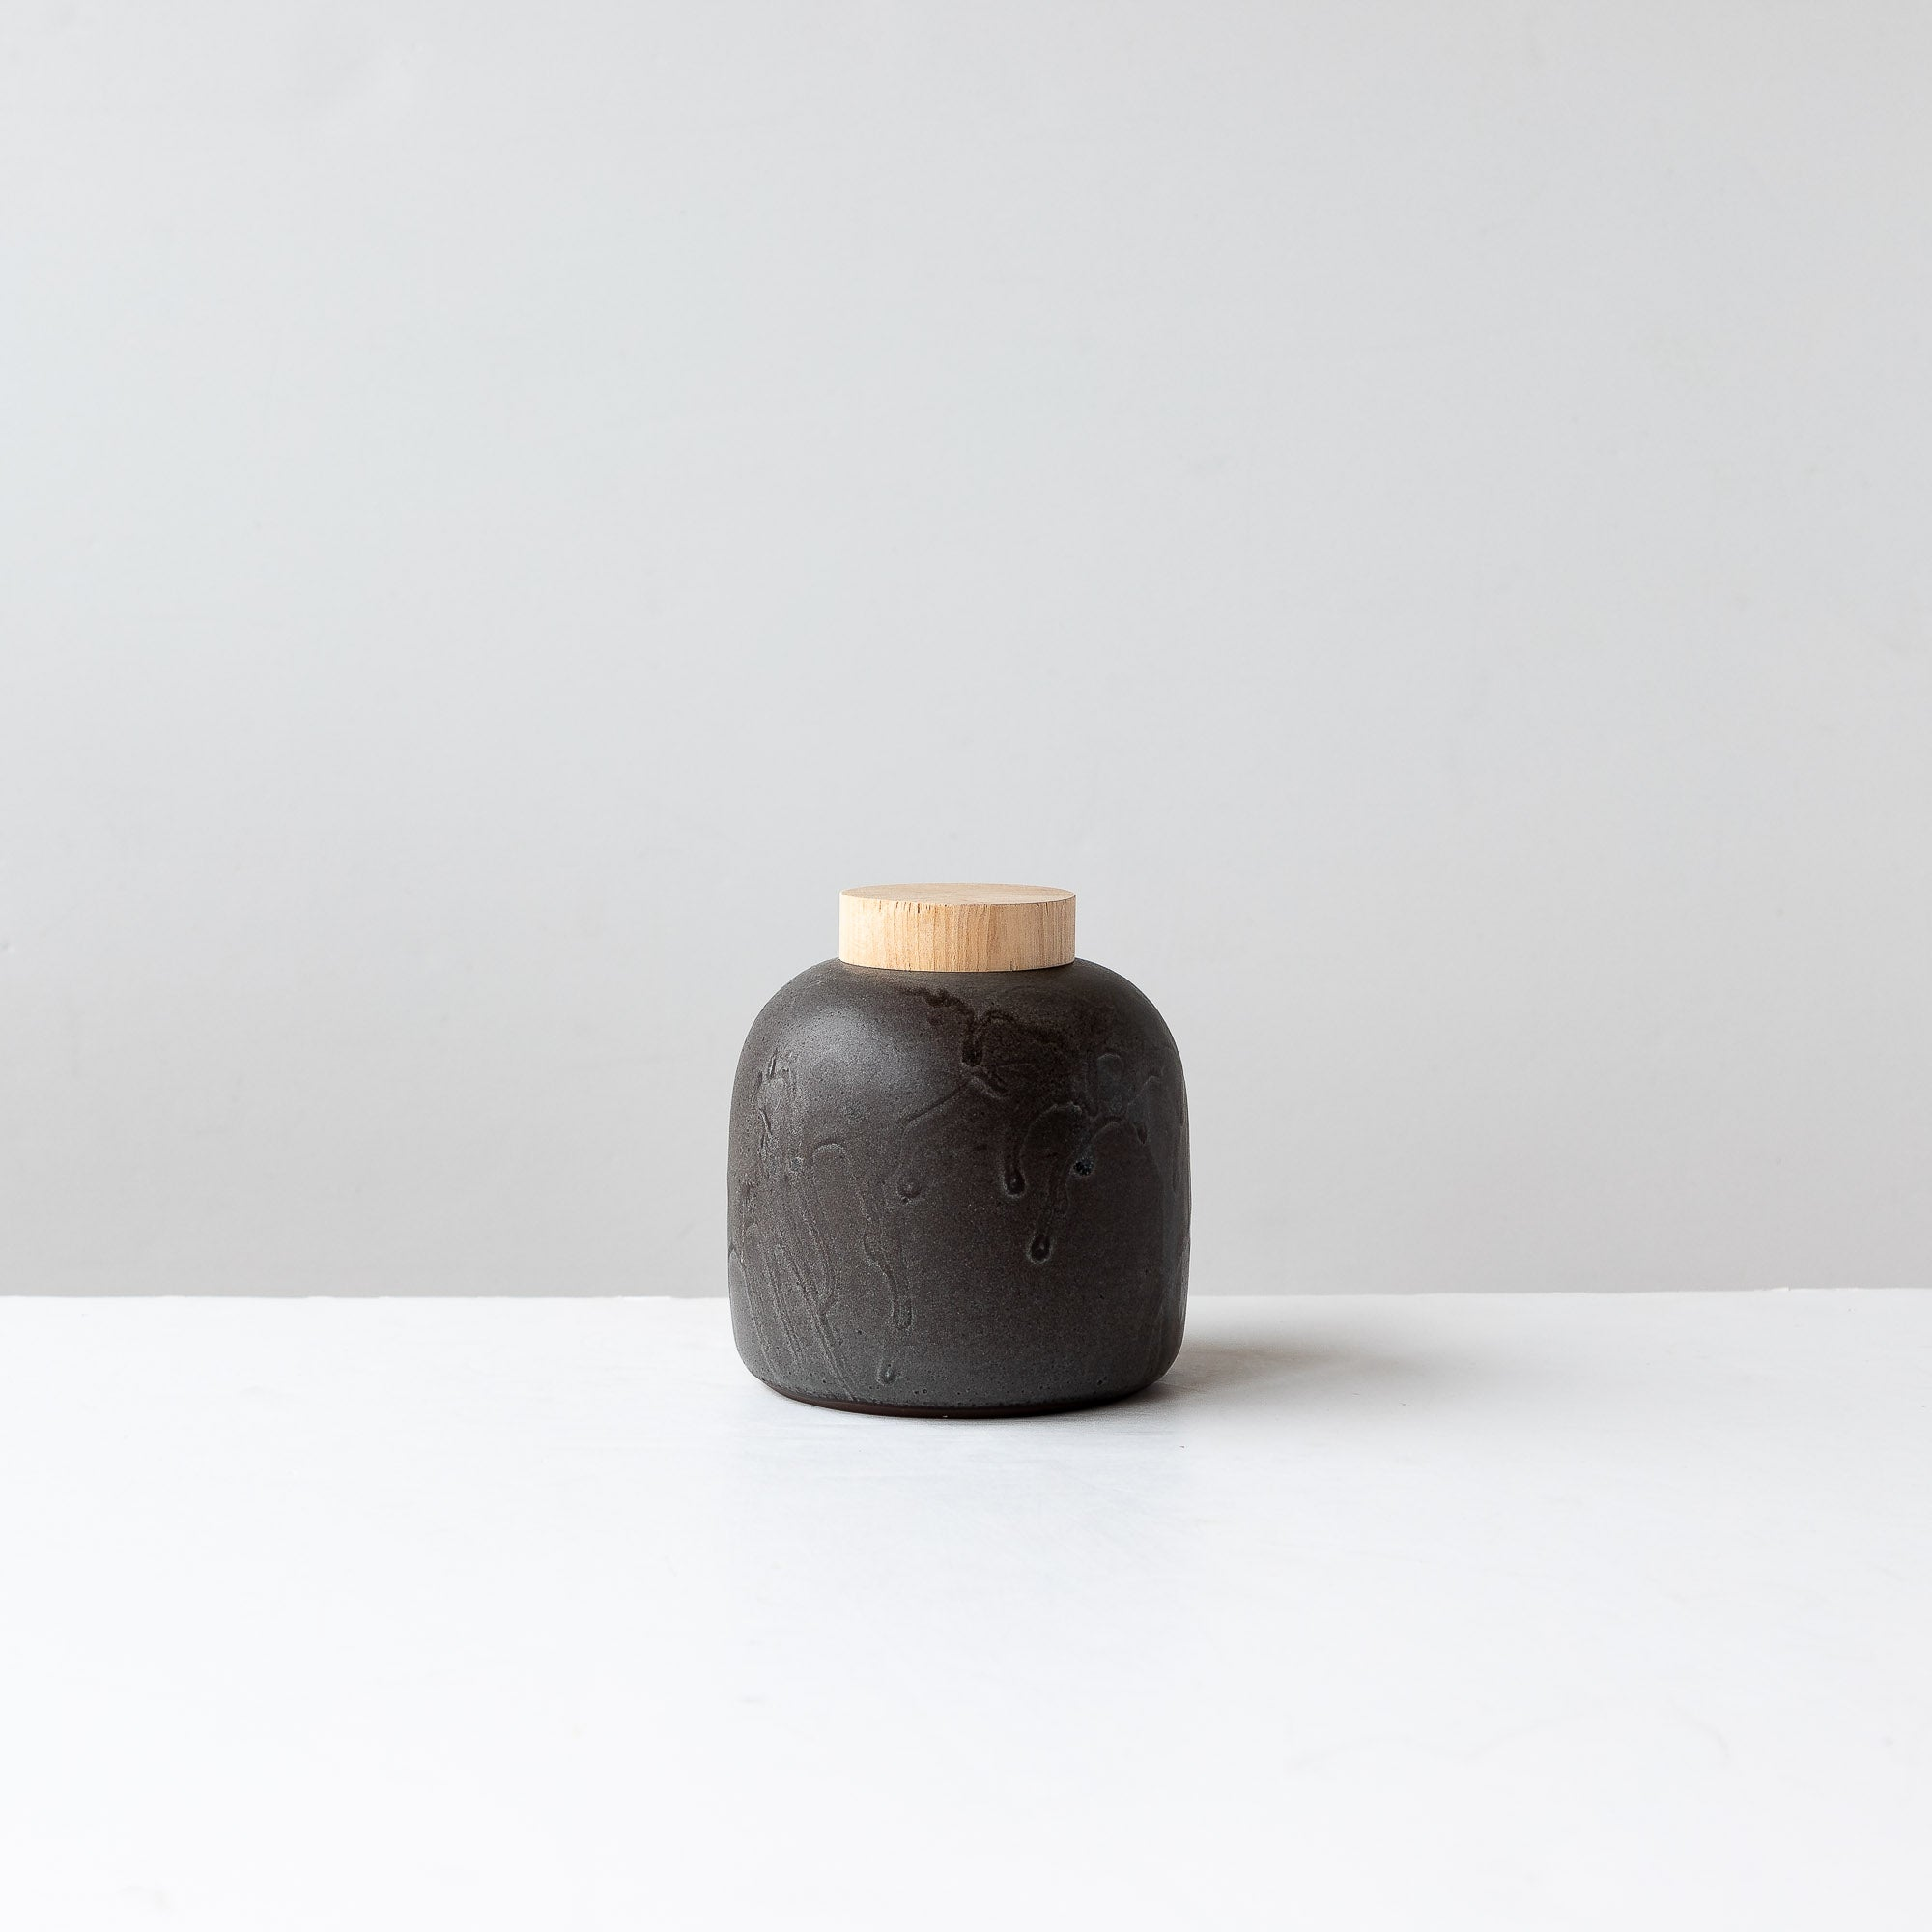 Square Handmade Small Jar with Wooden Lid - Sold by Chic & Basta